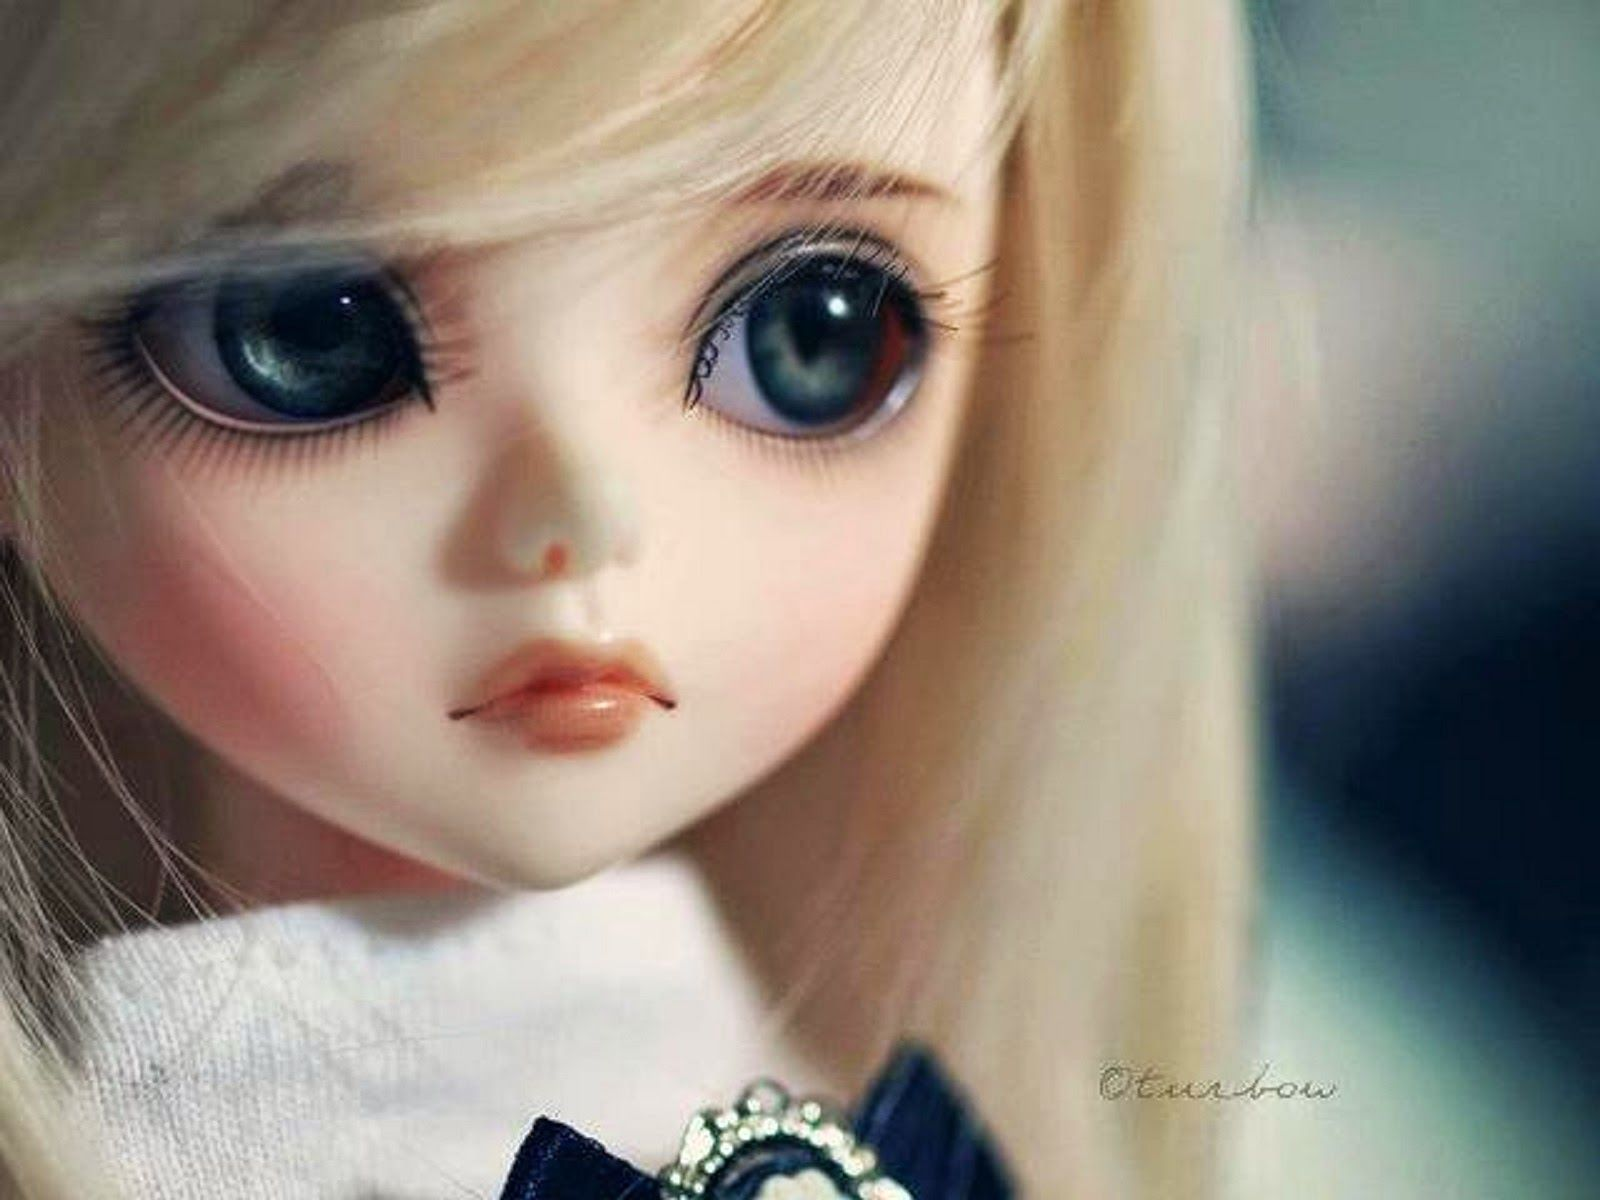 Hd wallpaper doll - Cute Doll Pictures Wallpapers